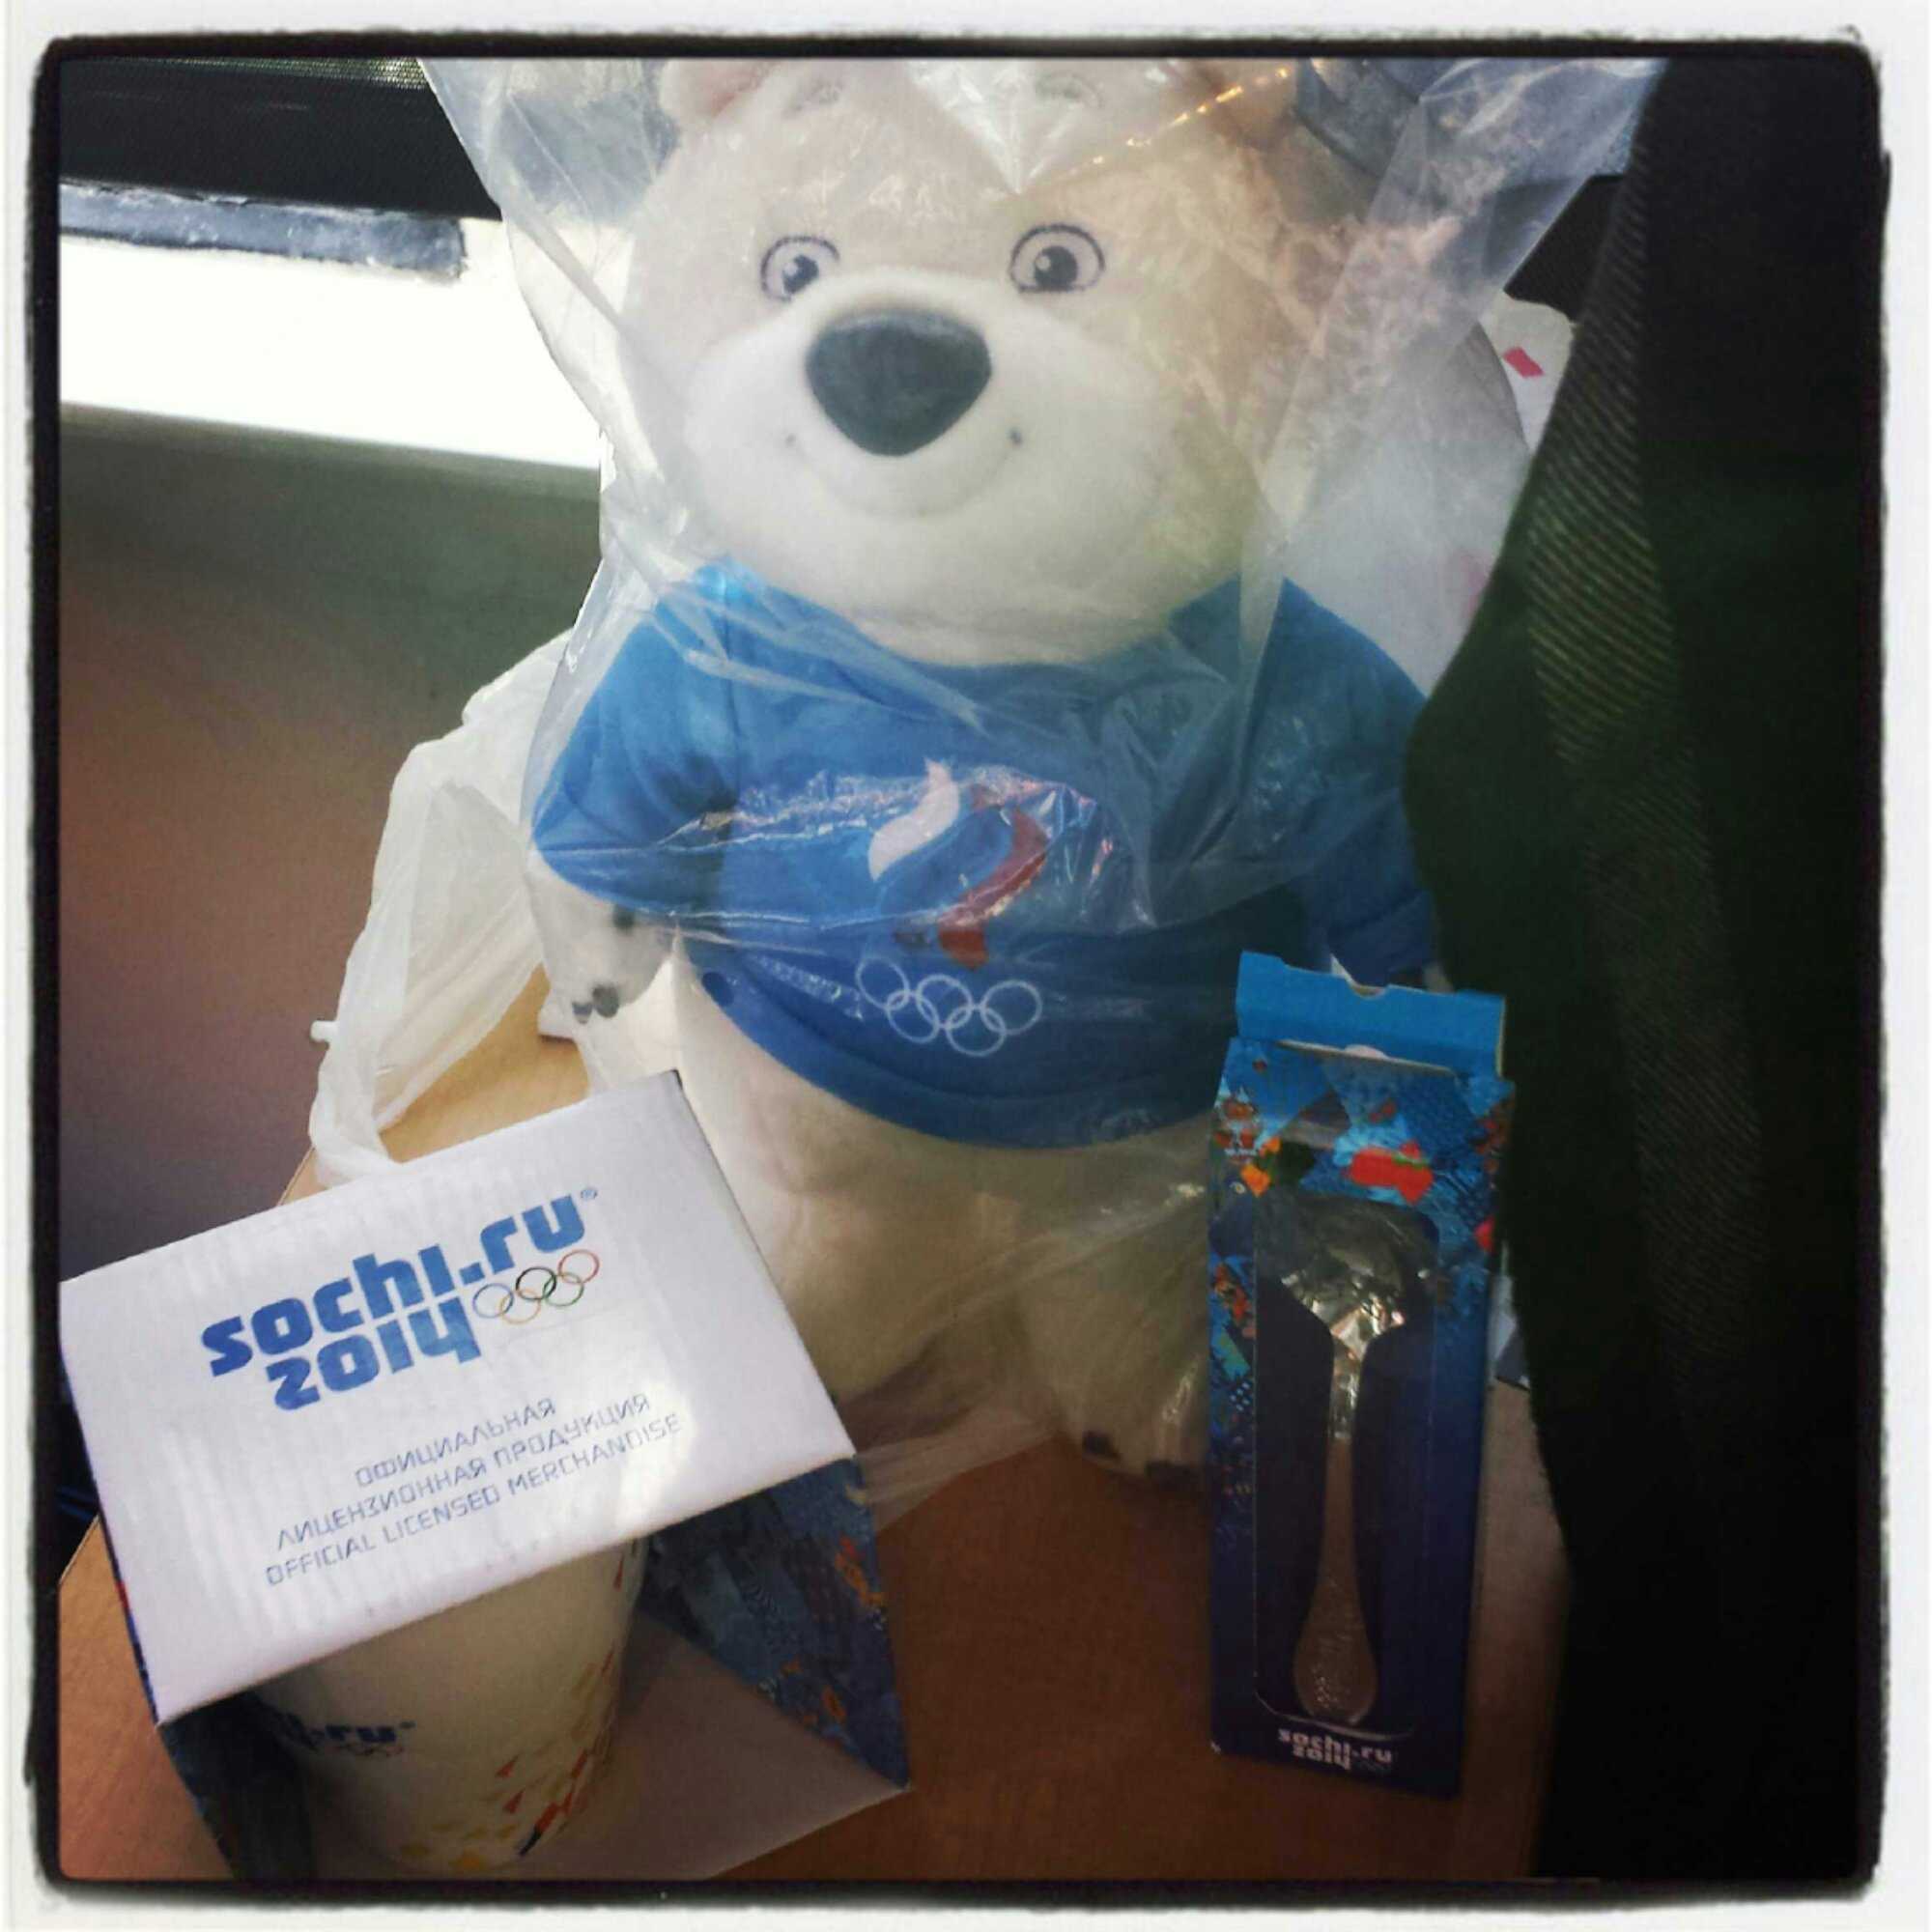 Sochi Olympics bear, spoon and mug from Russia